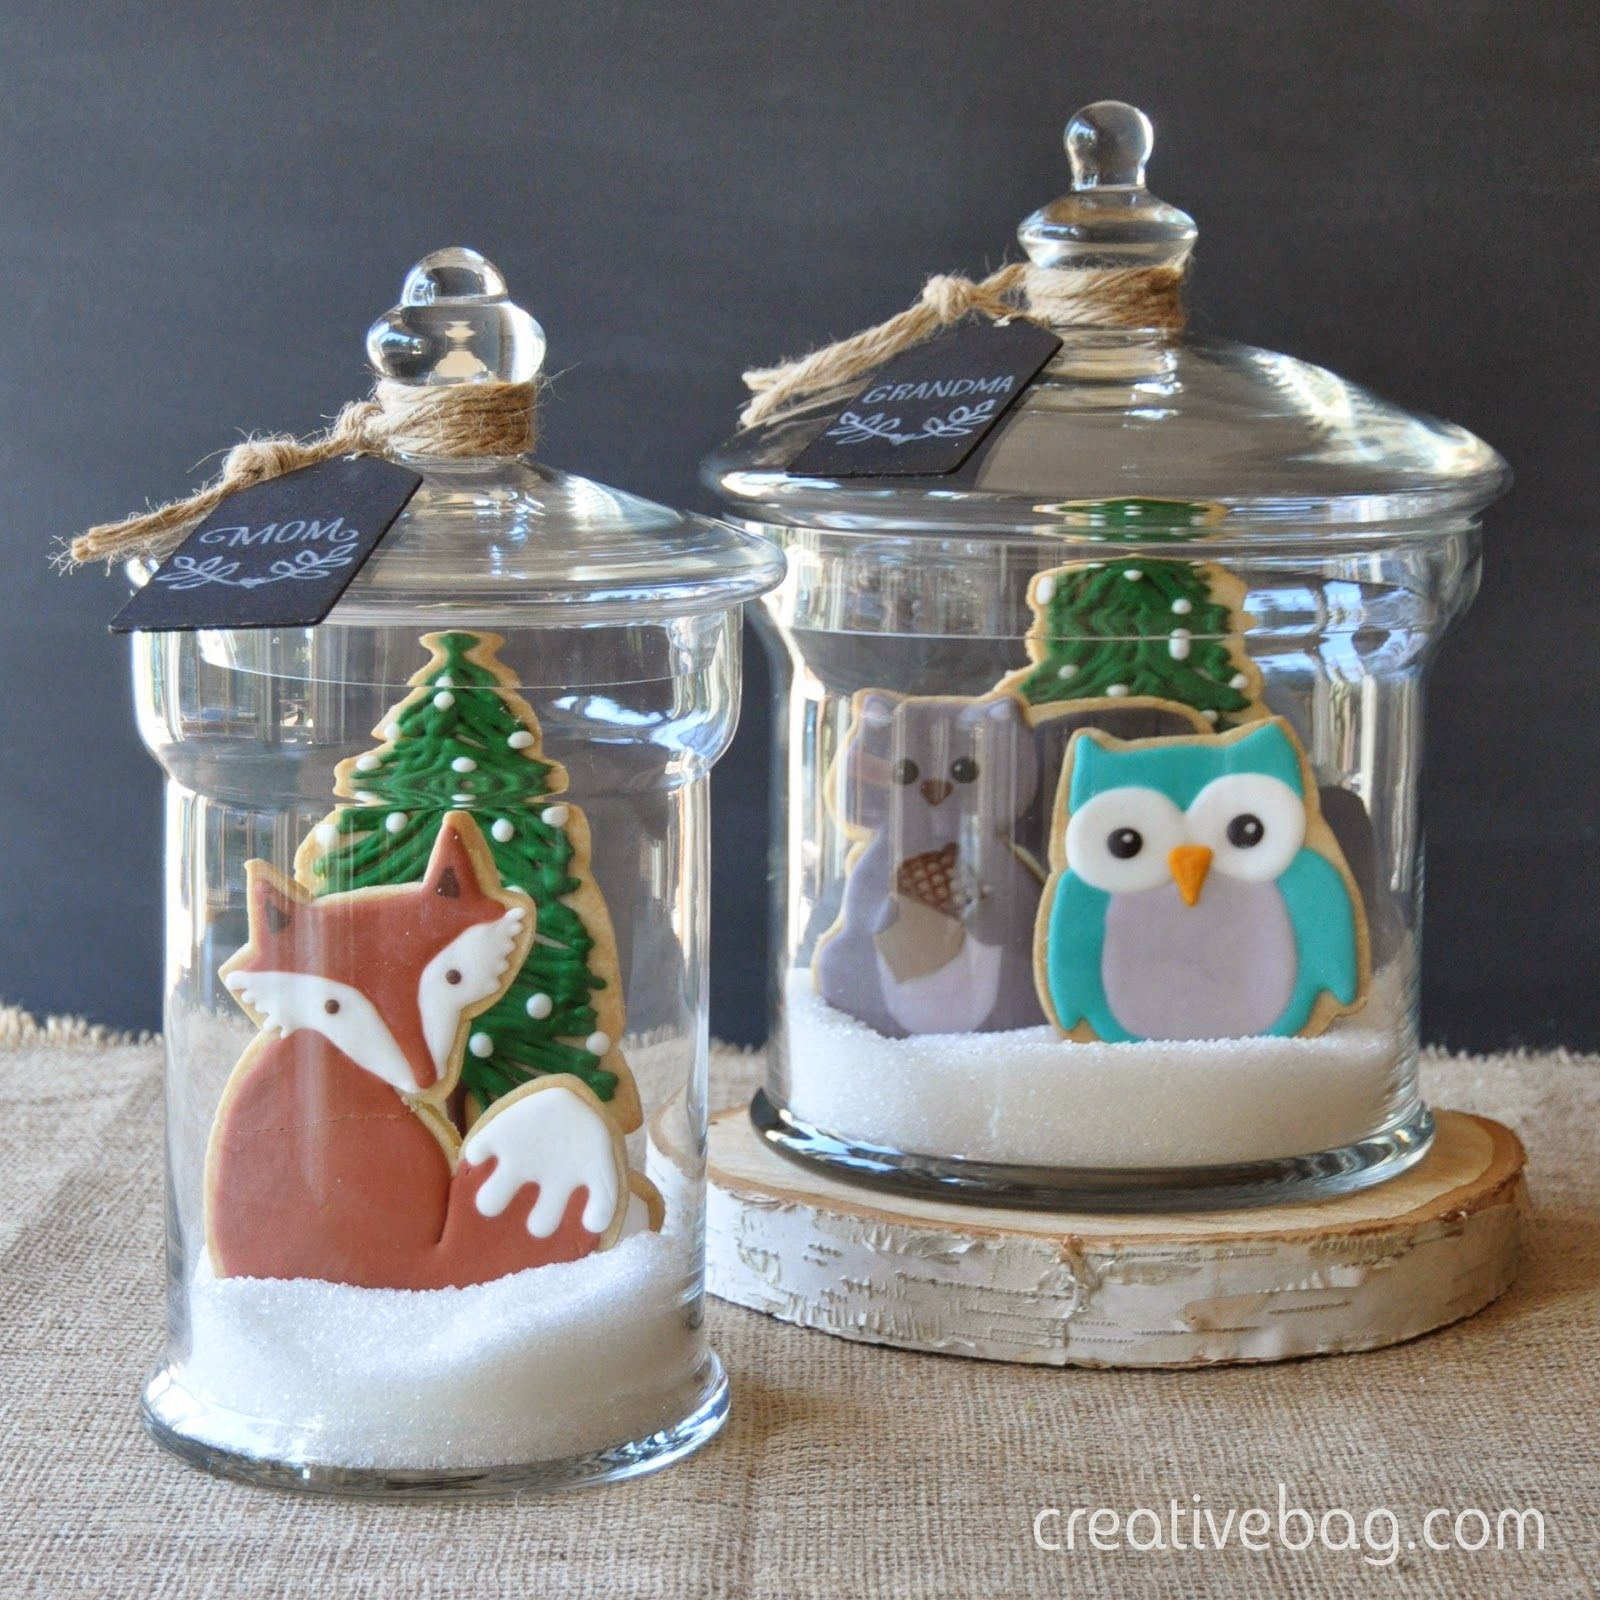 Custom made woodland cookies packaged in glass containers